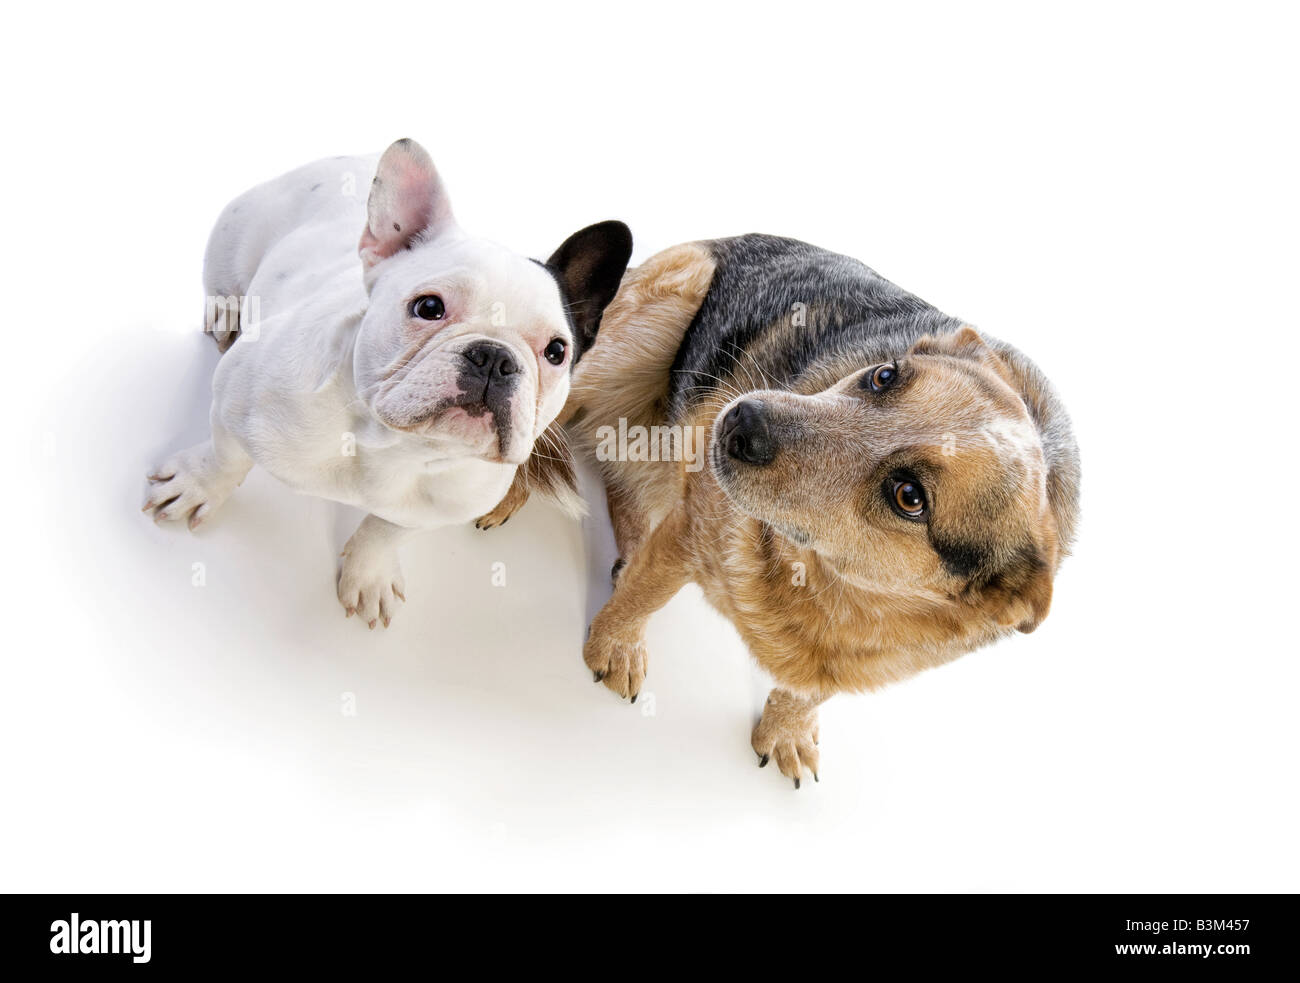 Black and white French bulldog and Australian Cattle Dog sittling